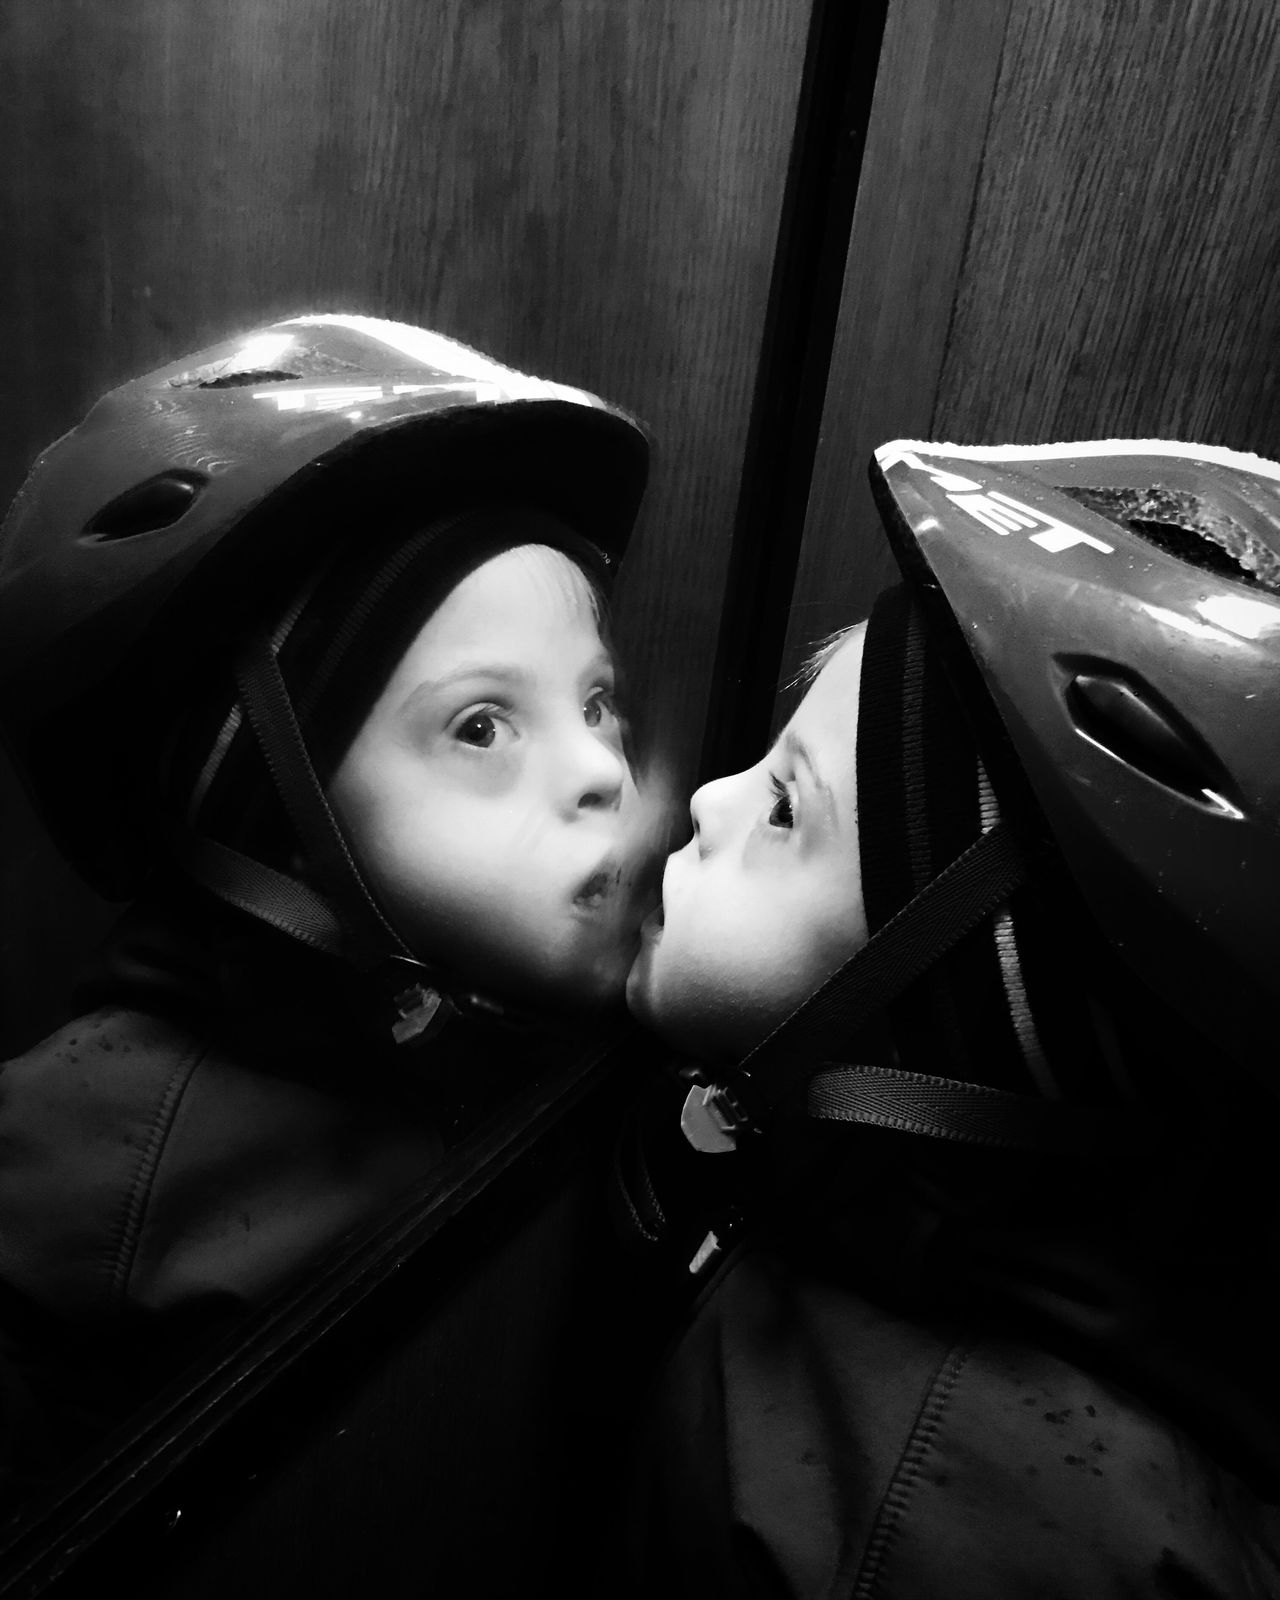 Monochrome Bw_collection Black And White Down Syndrome World_downsyndrome_day